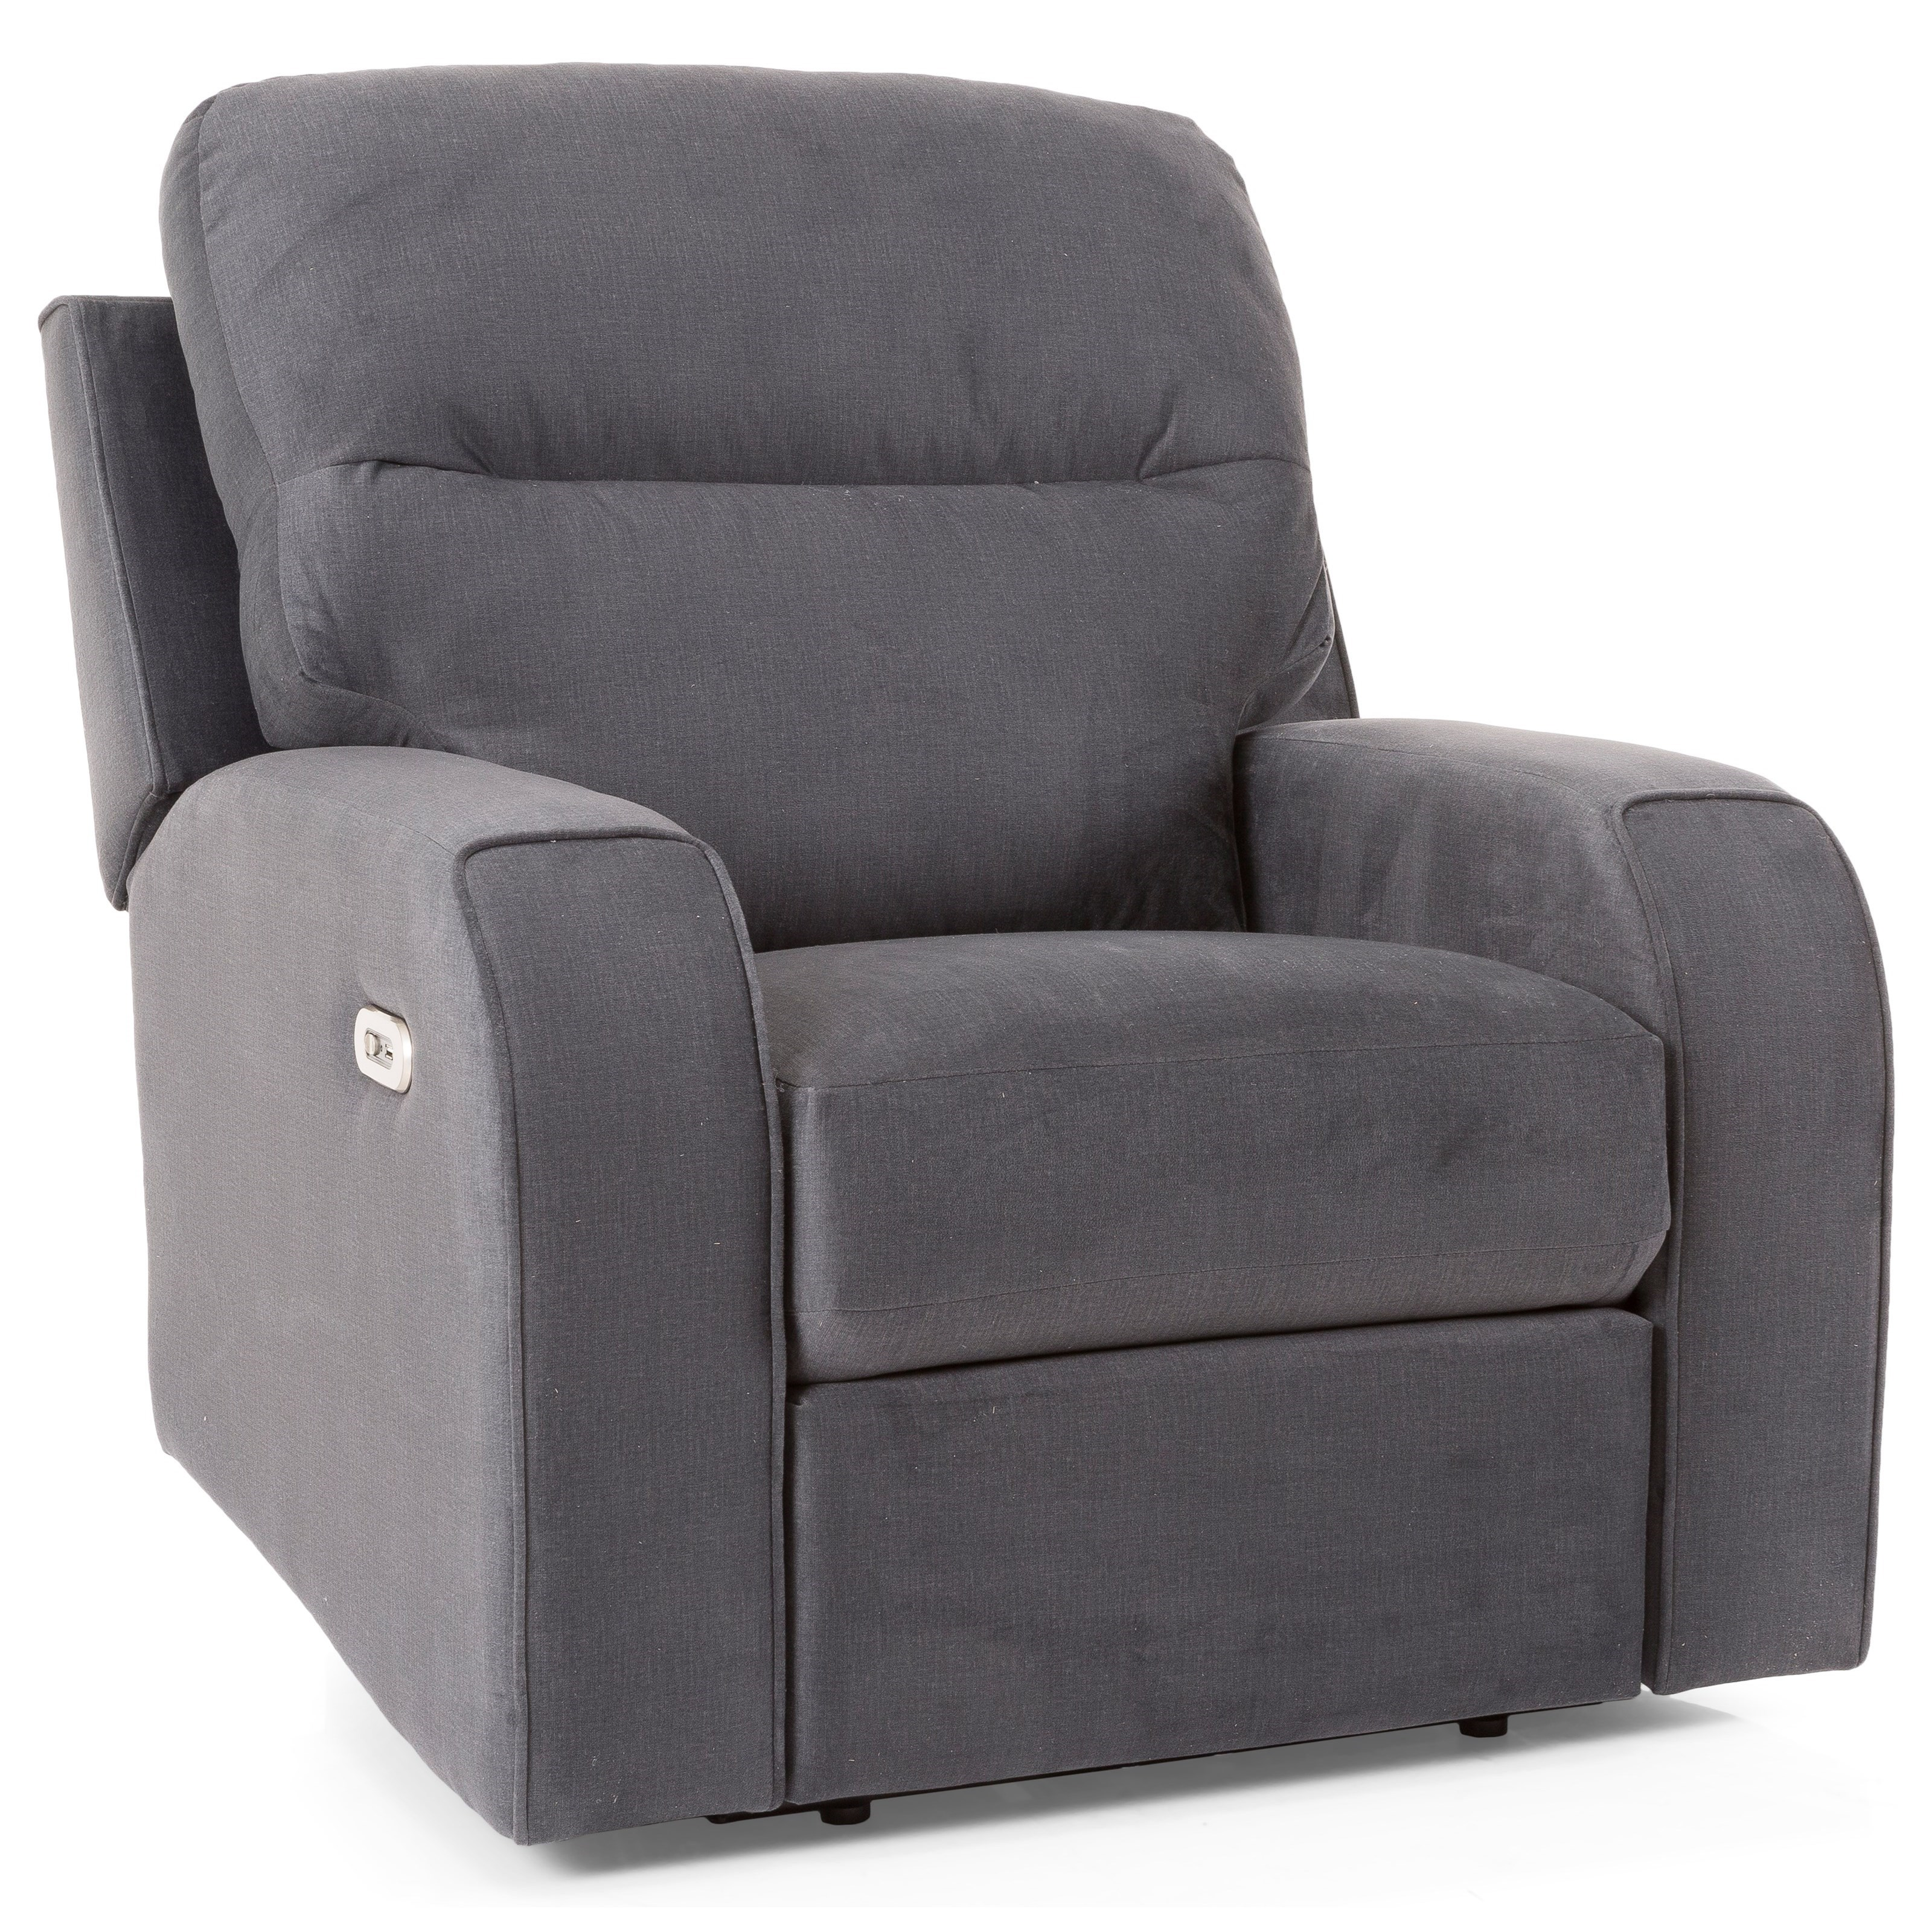 M844 Glider Recliner by Decor-Rest at Johnny Janosik